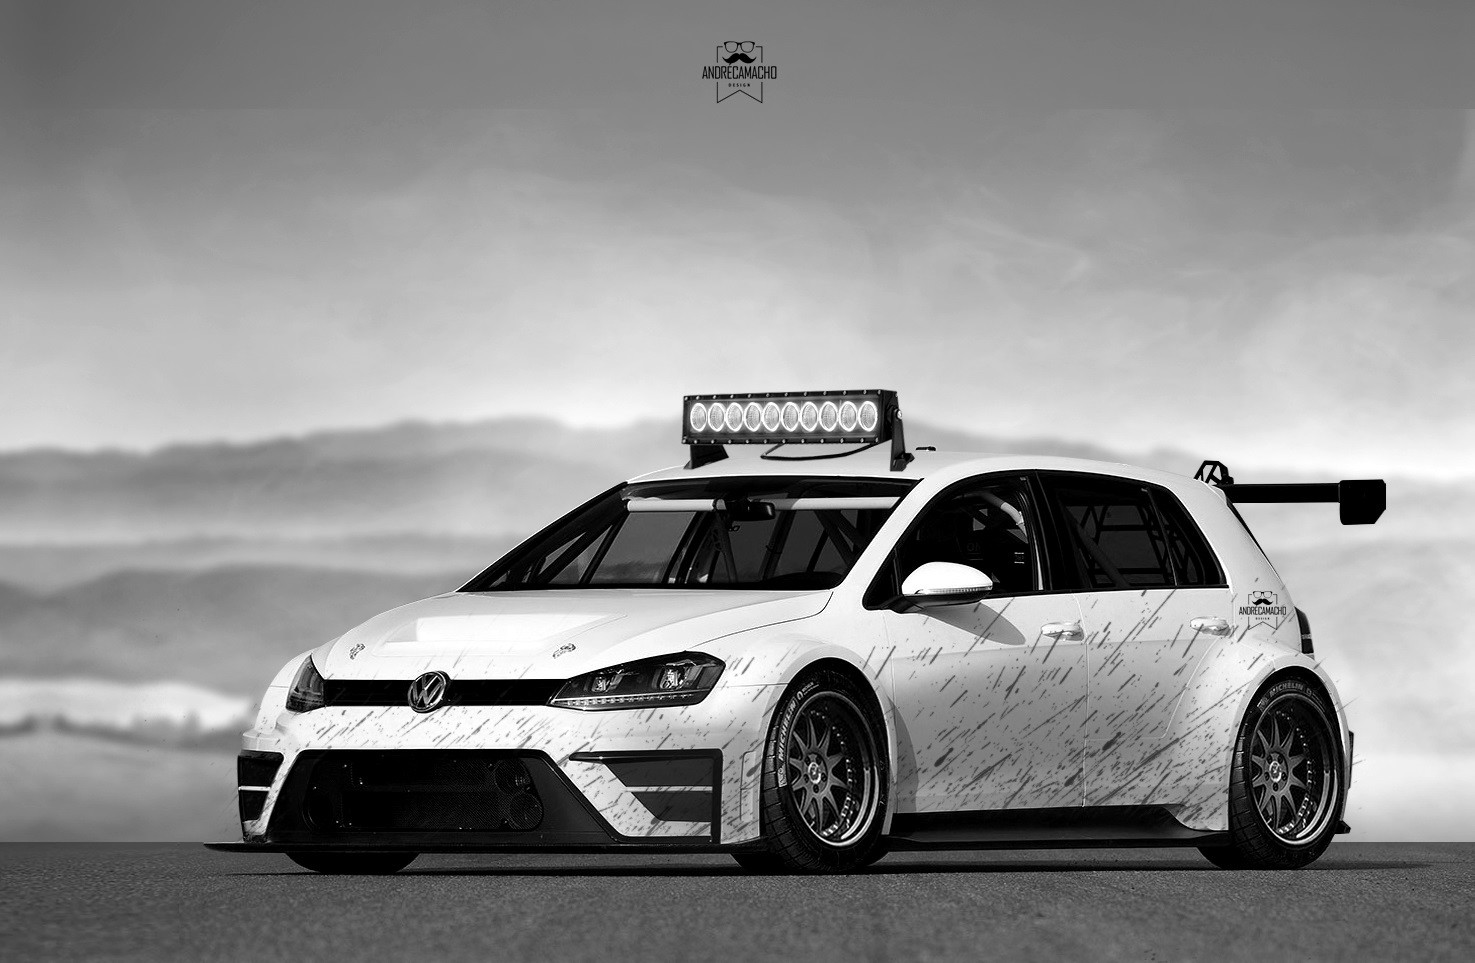 Andre camacho design 150706 vw golf 05 11 logo 3